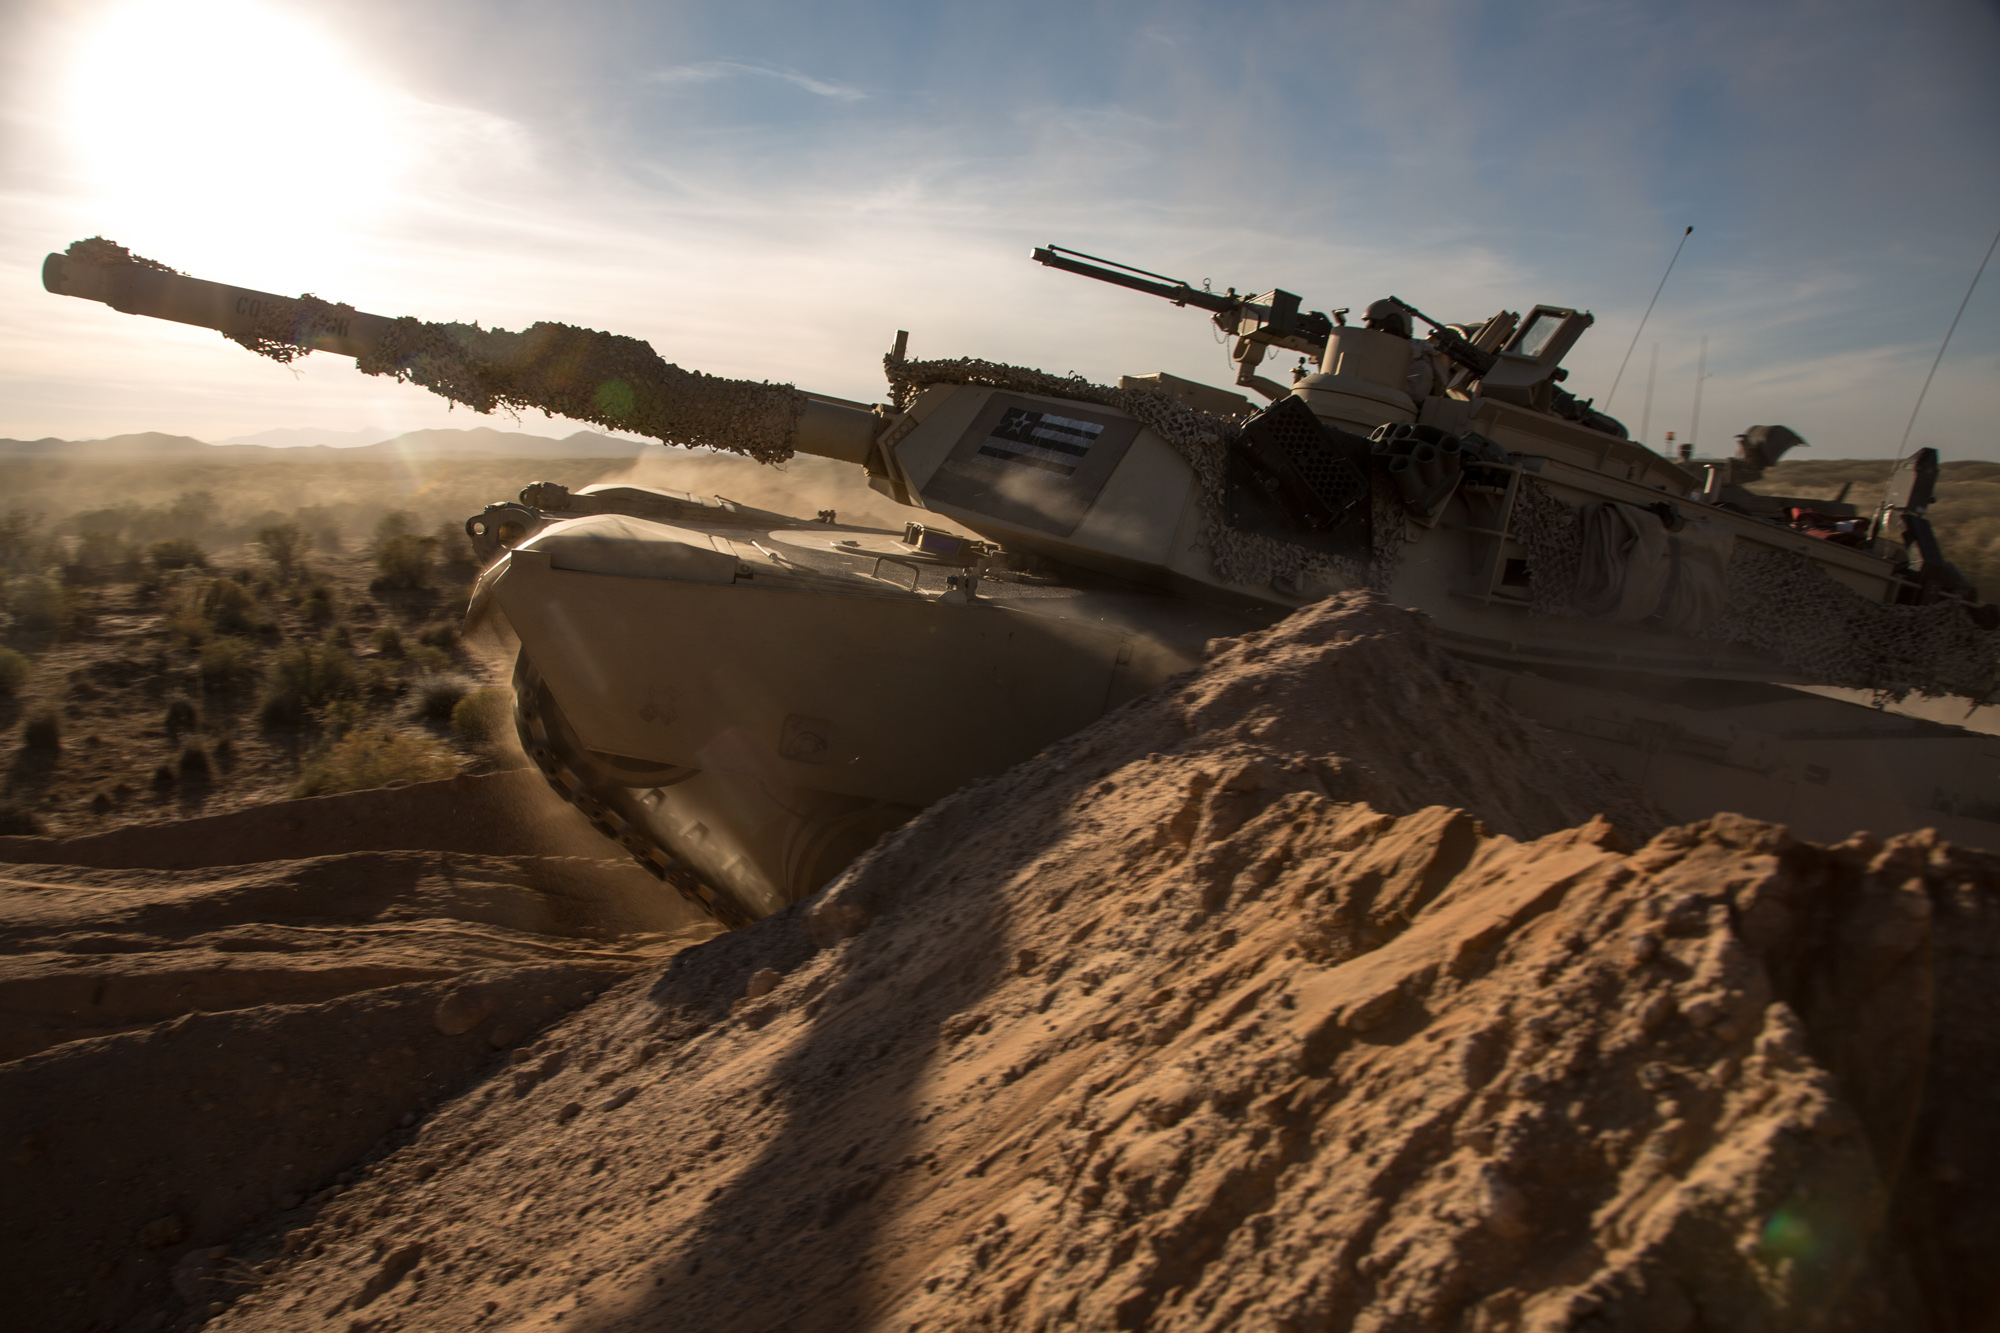 An M1A2 main battle tank assigned to 1st Battalion, 35nd Armored Regiment breaches obstacles during AWA 17.1 at Fort Bliss on Oct. 21, 2016. Active protection systems for main battle tanks are one of several critical capabilities that would be key in any conflict with a military peer like Russia, but they have atrophied in recent years as the Army has faced non-peer adversaries. The Army is focusing modernization efforts on those capability gaps. (U.S. Army photo by Pfc. Frederick Poirier, 55th Combat Camera)